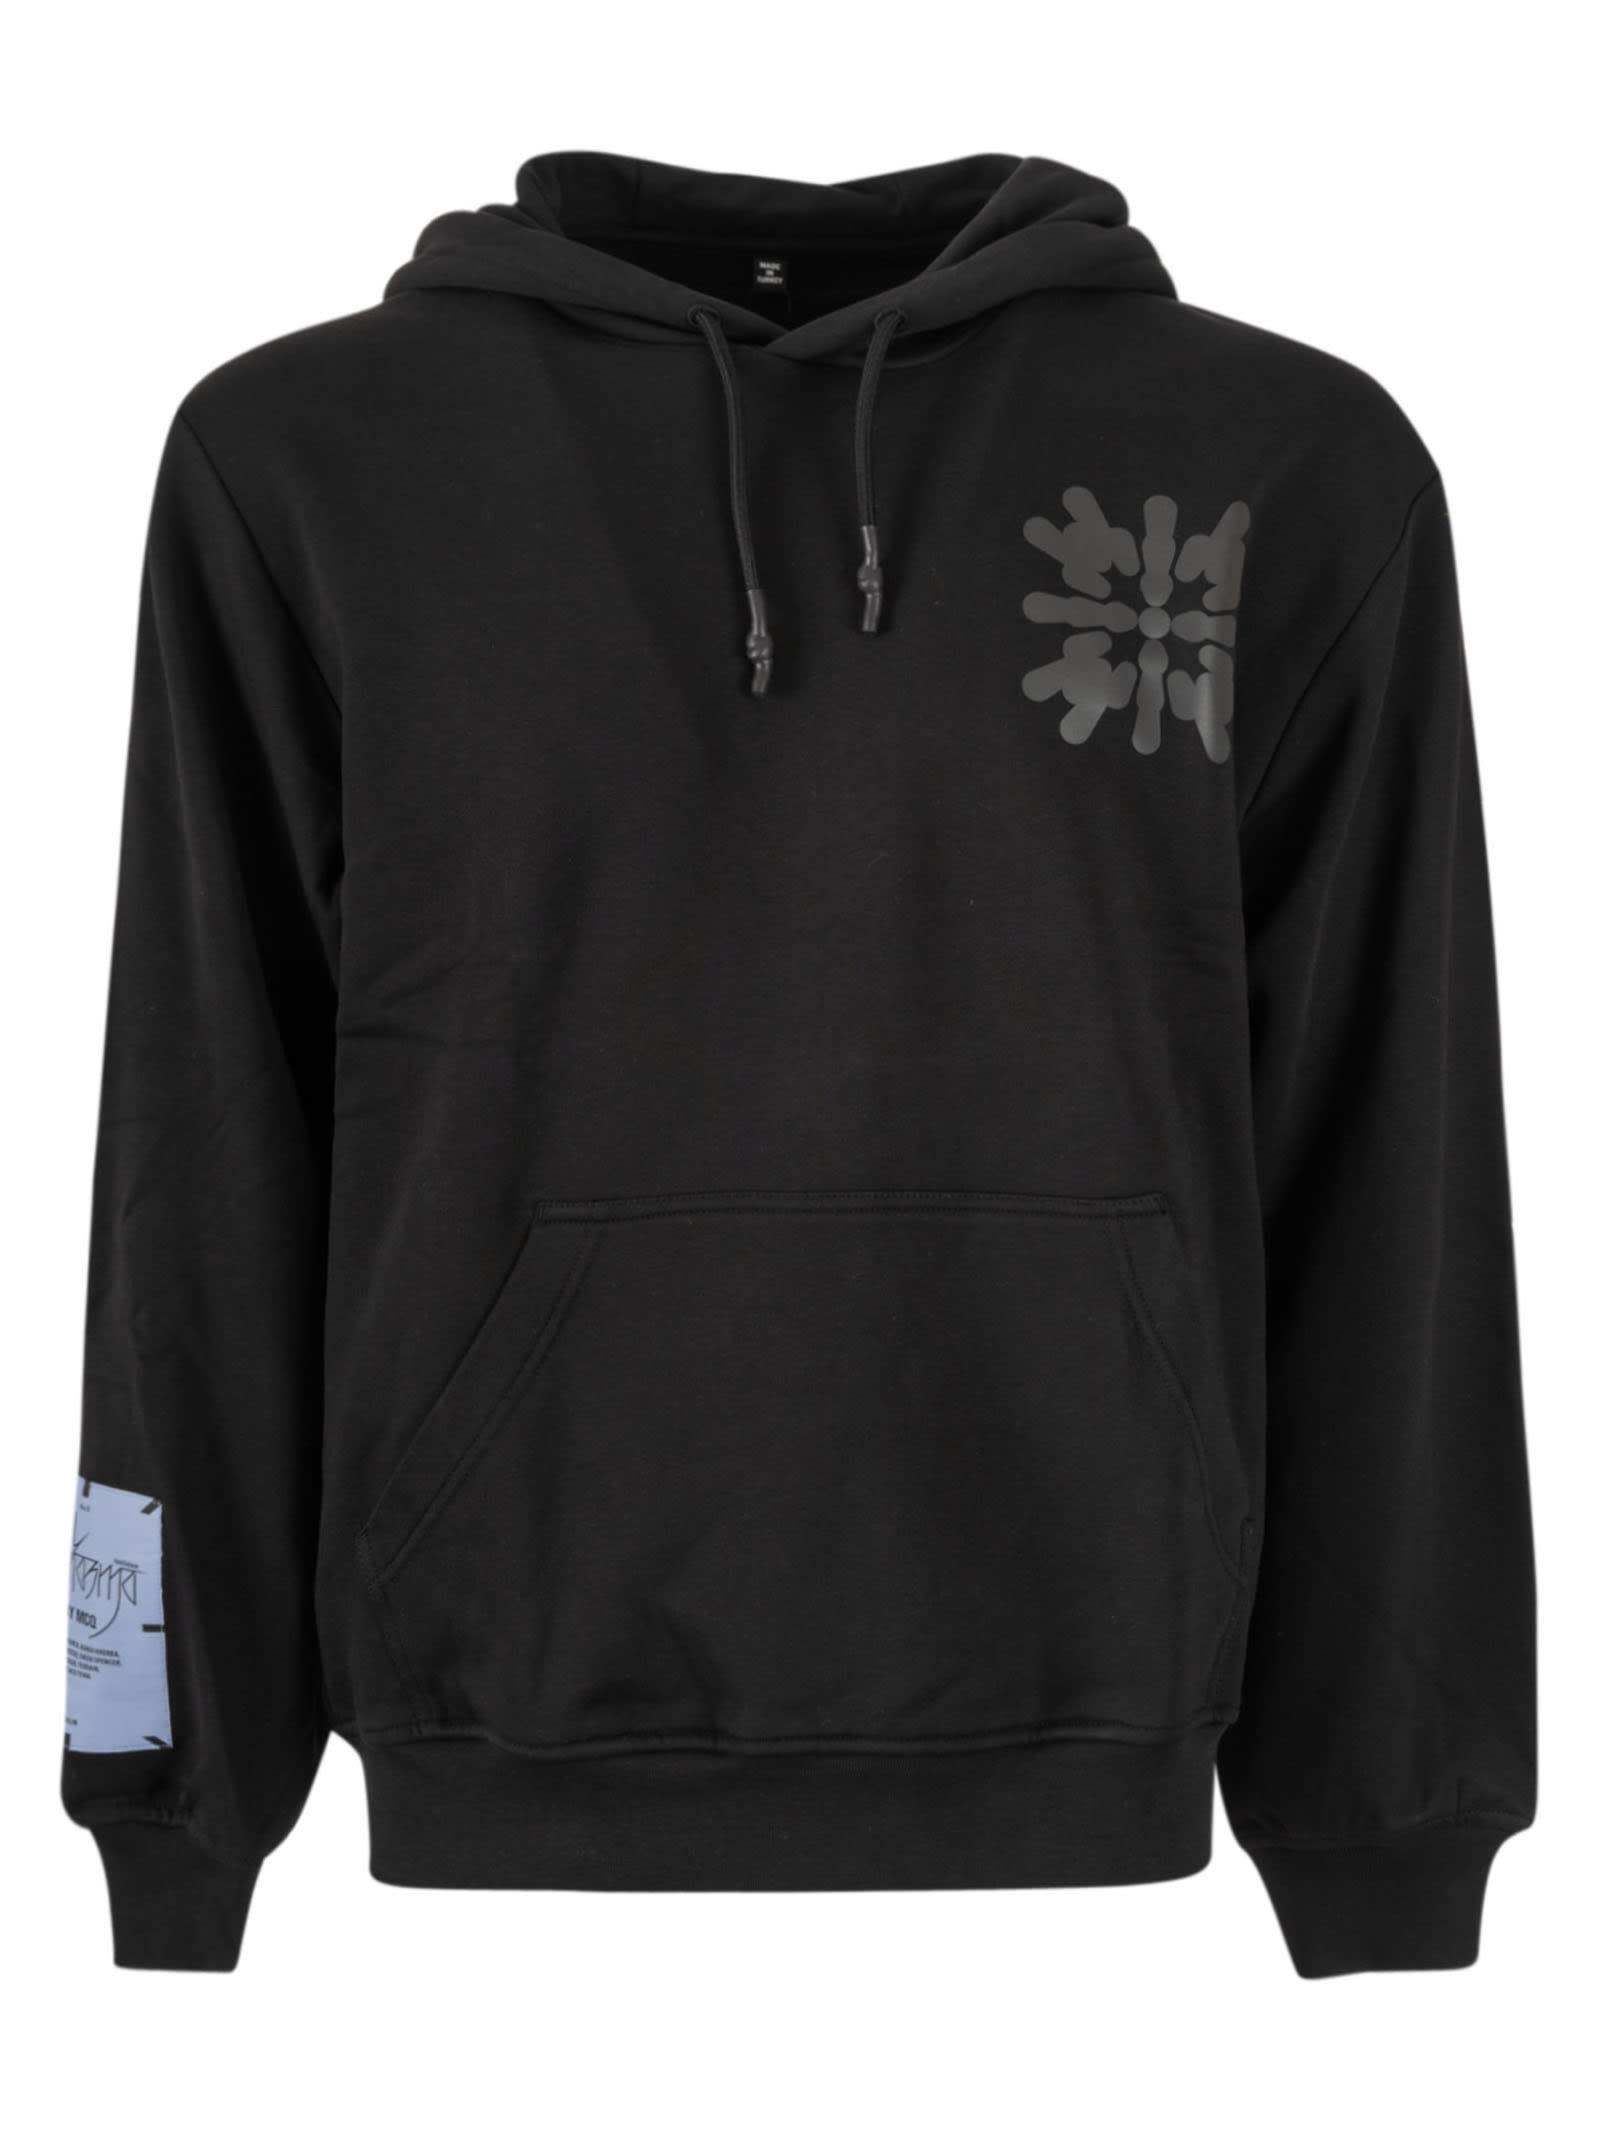 Mcq By Alexander Mcqueen Clothing REAR PRINT LOGO PATCHED HOODIE